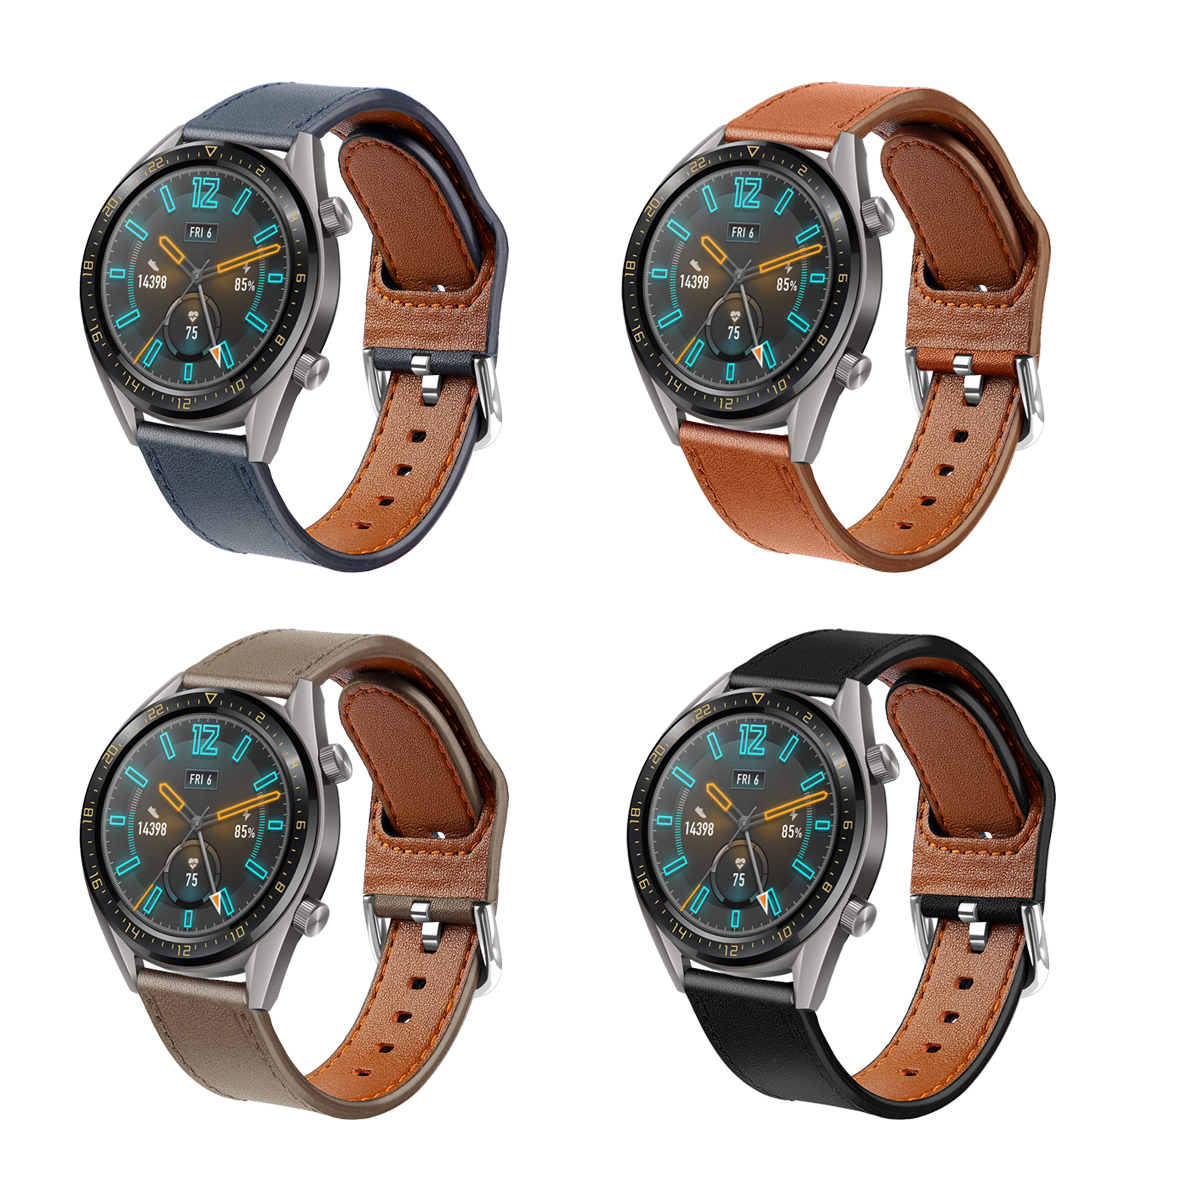 Compatible With Huawei GT2 46mm Leather Watch Straps Replacement Watchbands Genuine Leather Watch Bands For 22mm Watch 73001